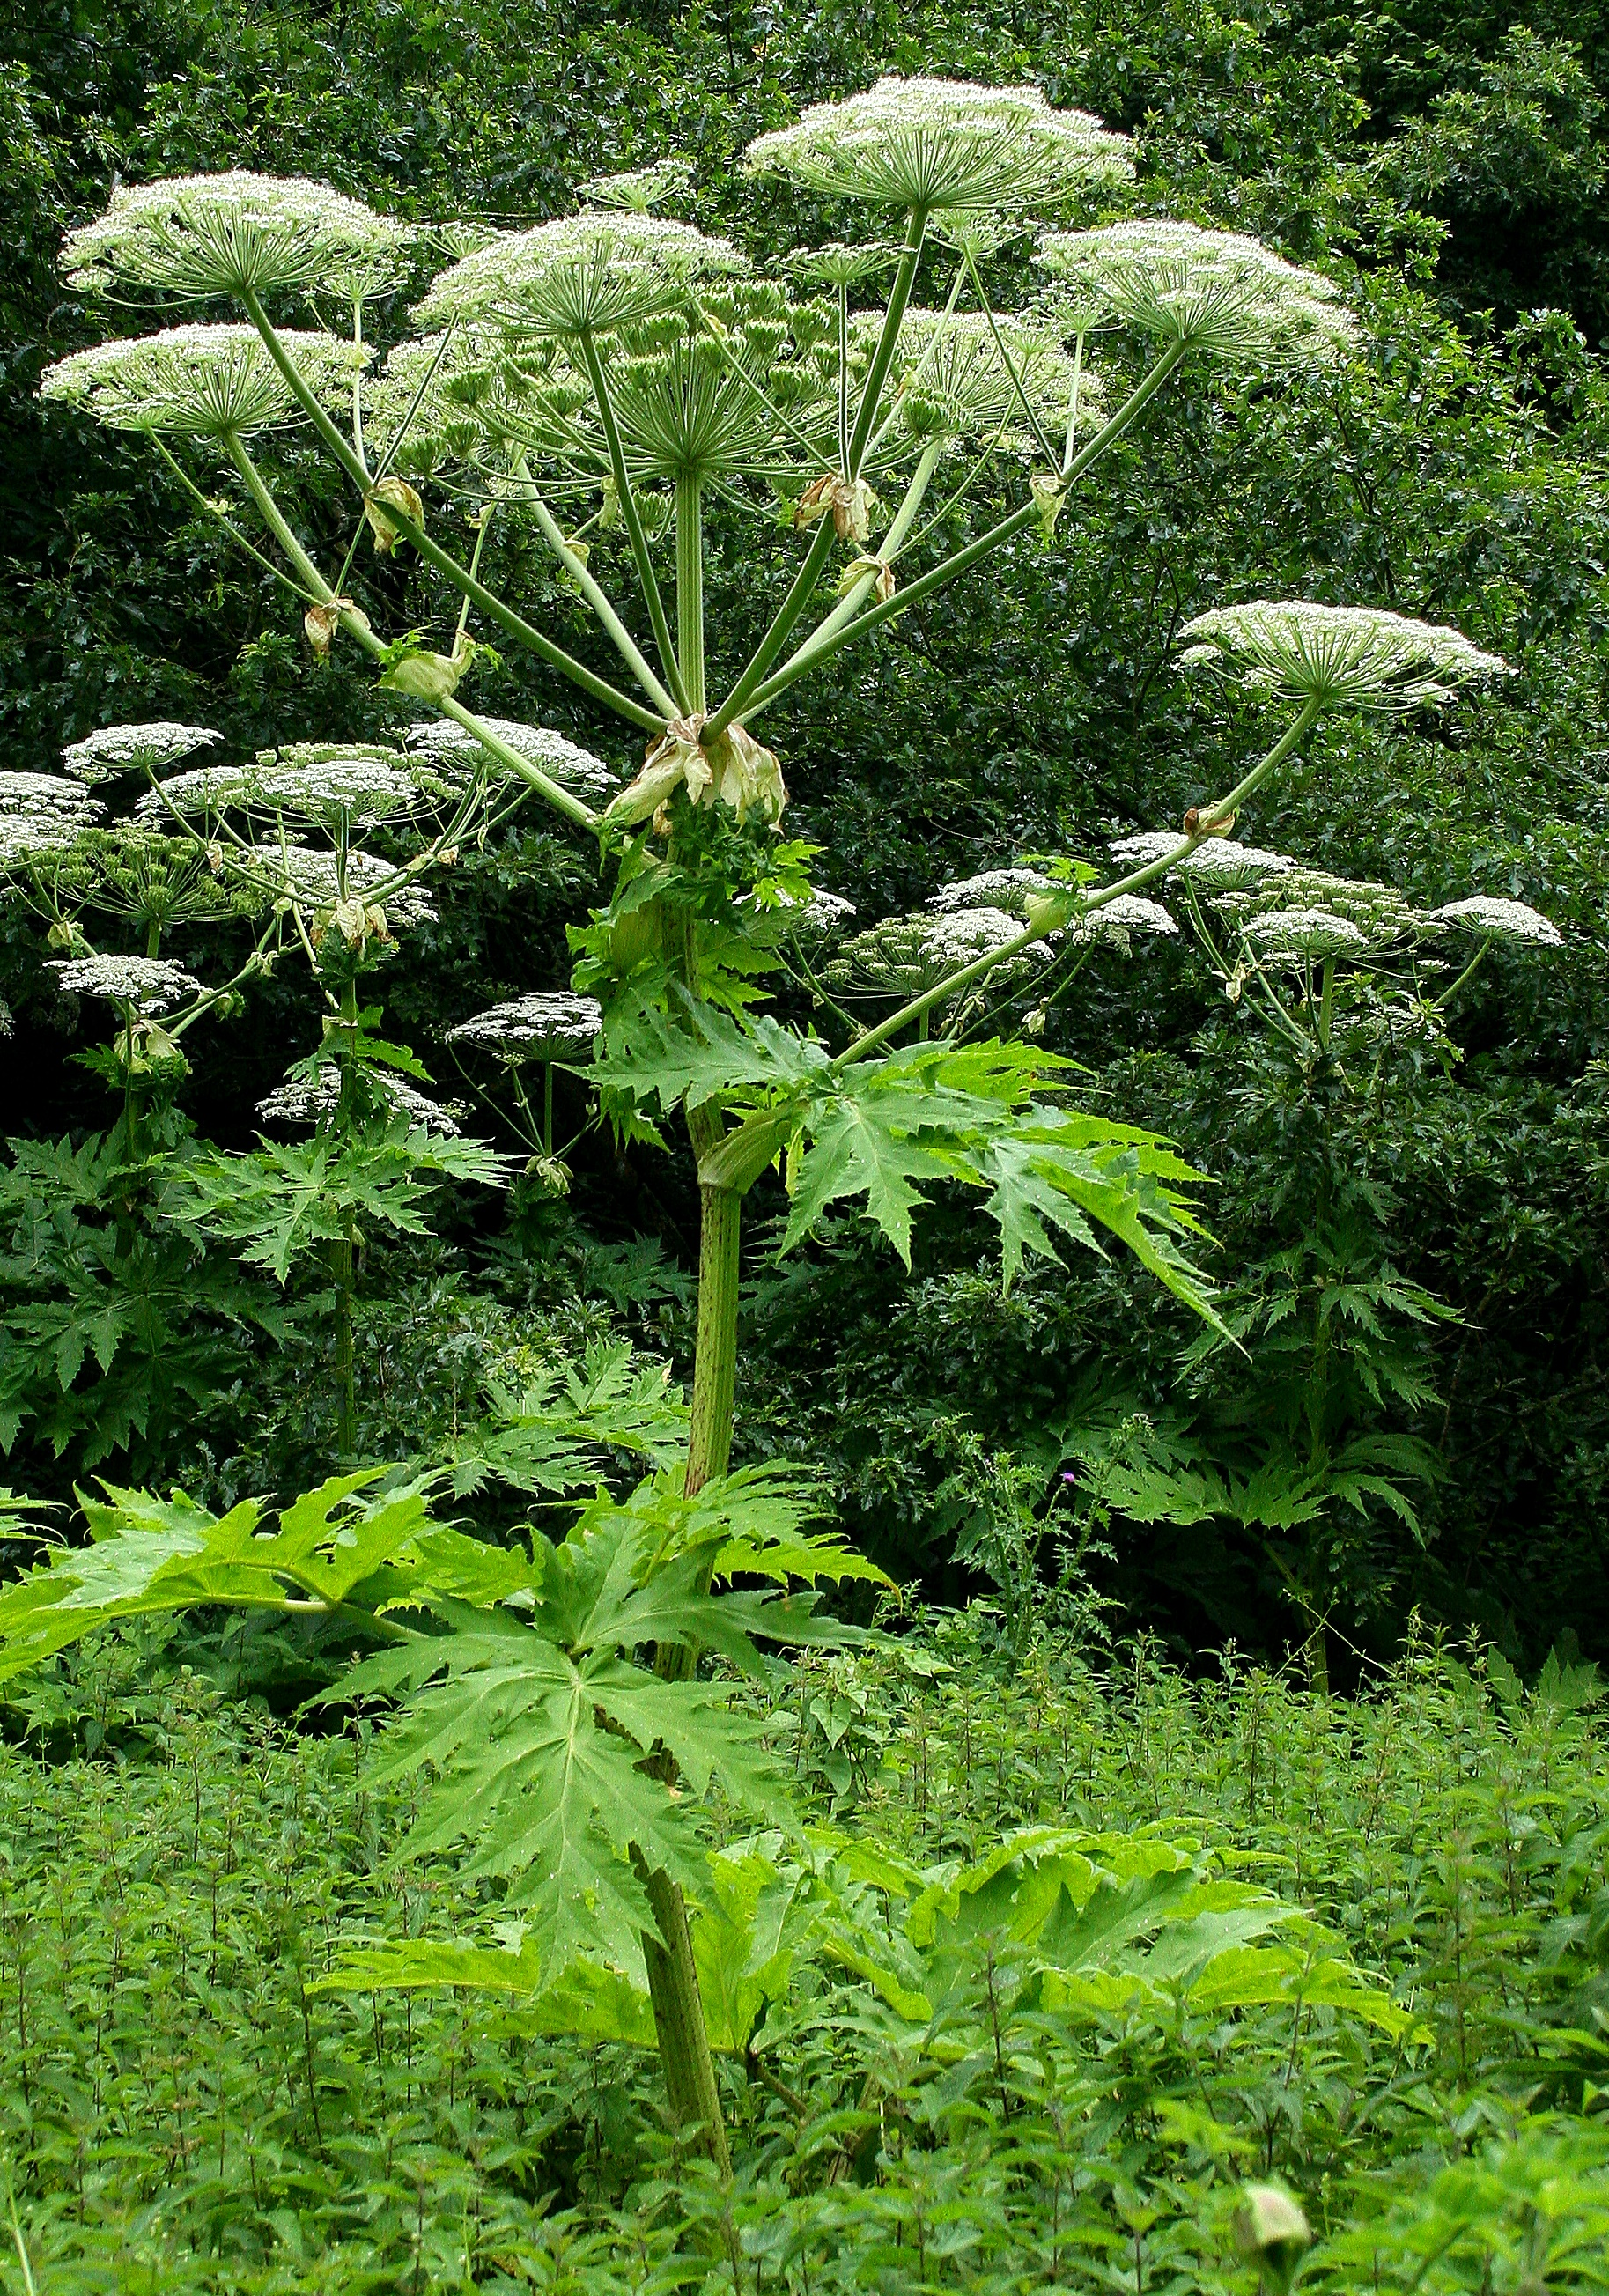 Giant Hog Weed Giant Hogweed: A New Contribution To Understanding This